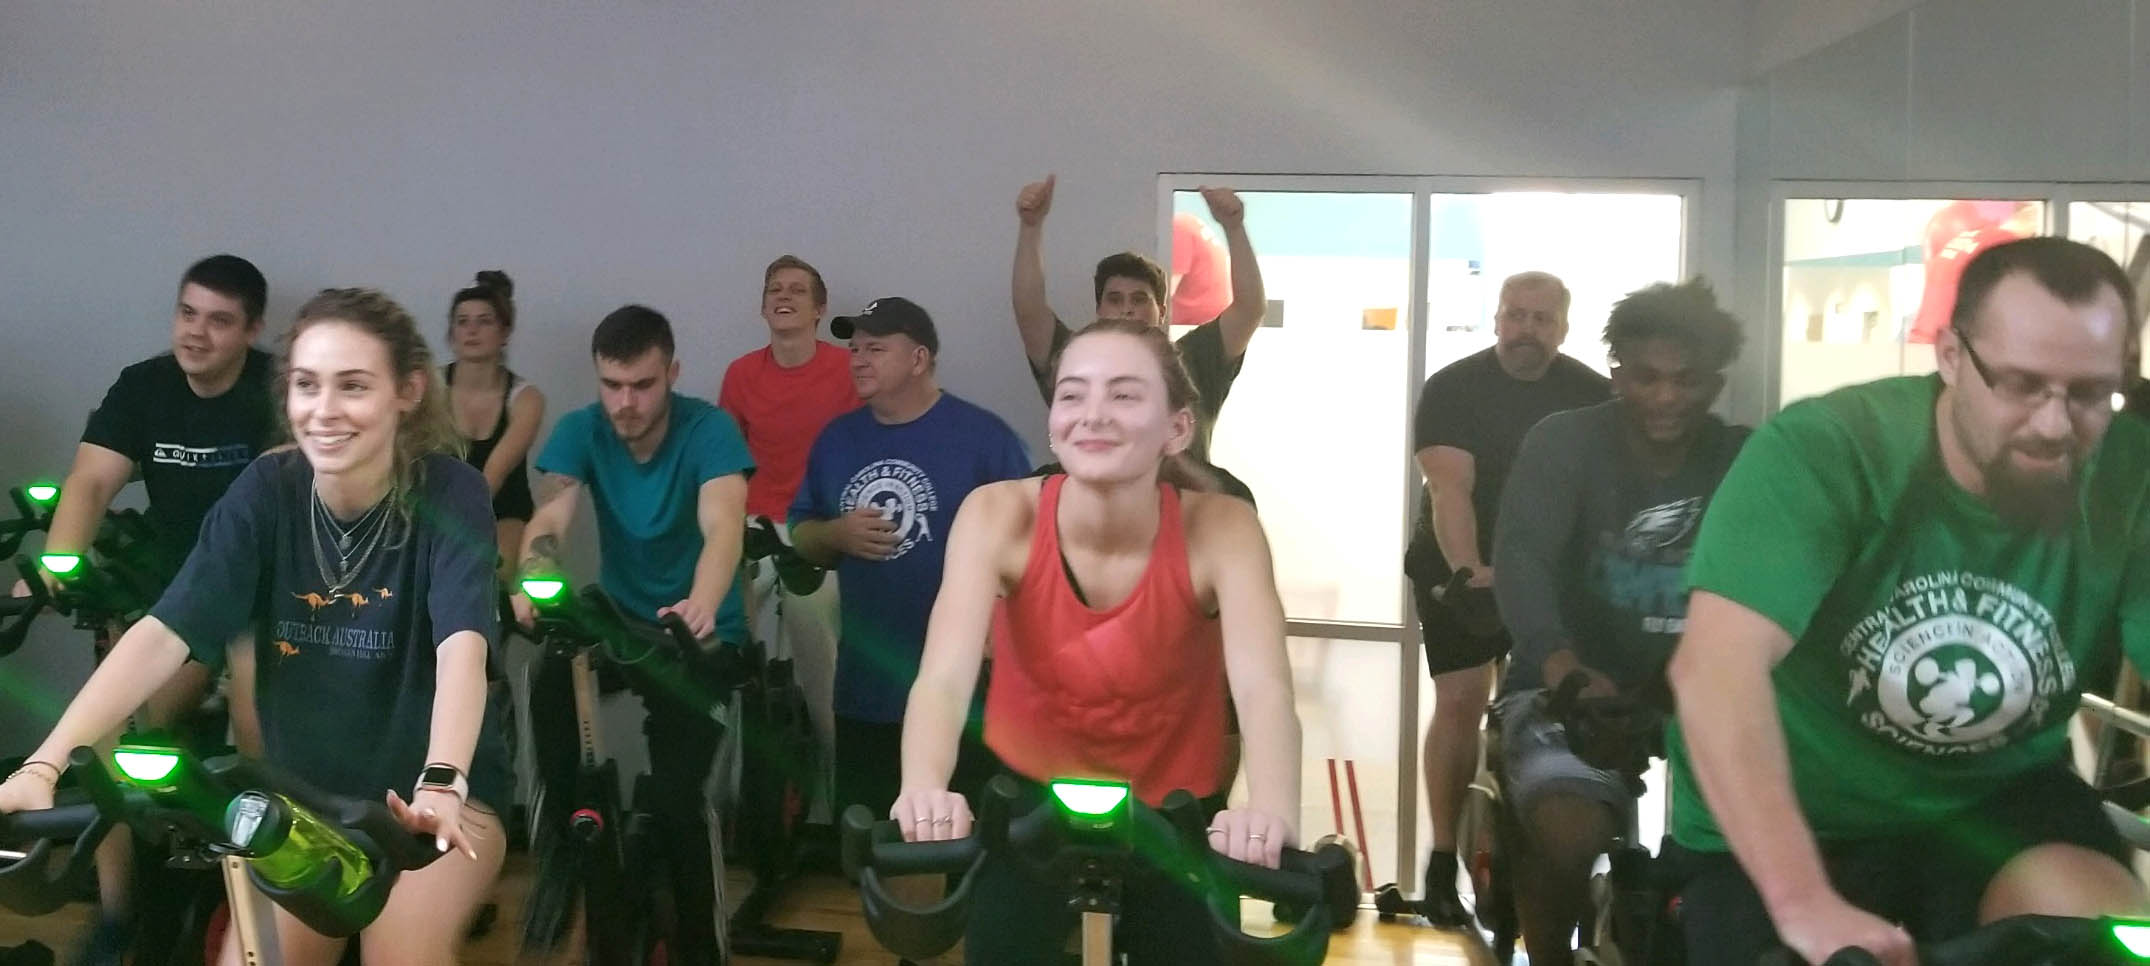 Click to enlarge,  Central Carolina Community College Health and Fitness Science students participate in stationary bike exercises at Sanford's Ingram Family YMCA.